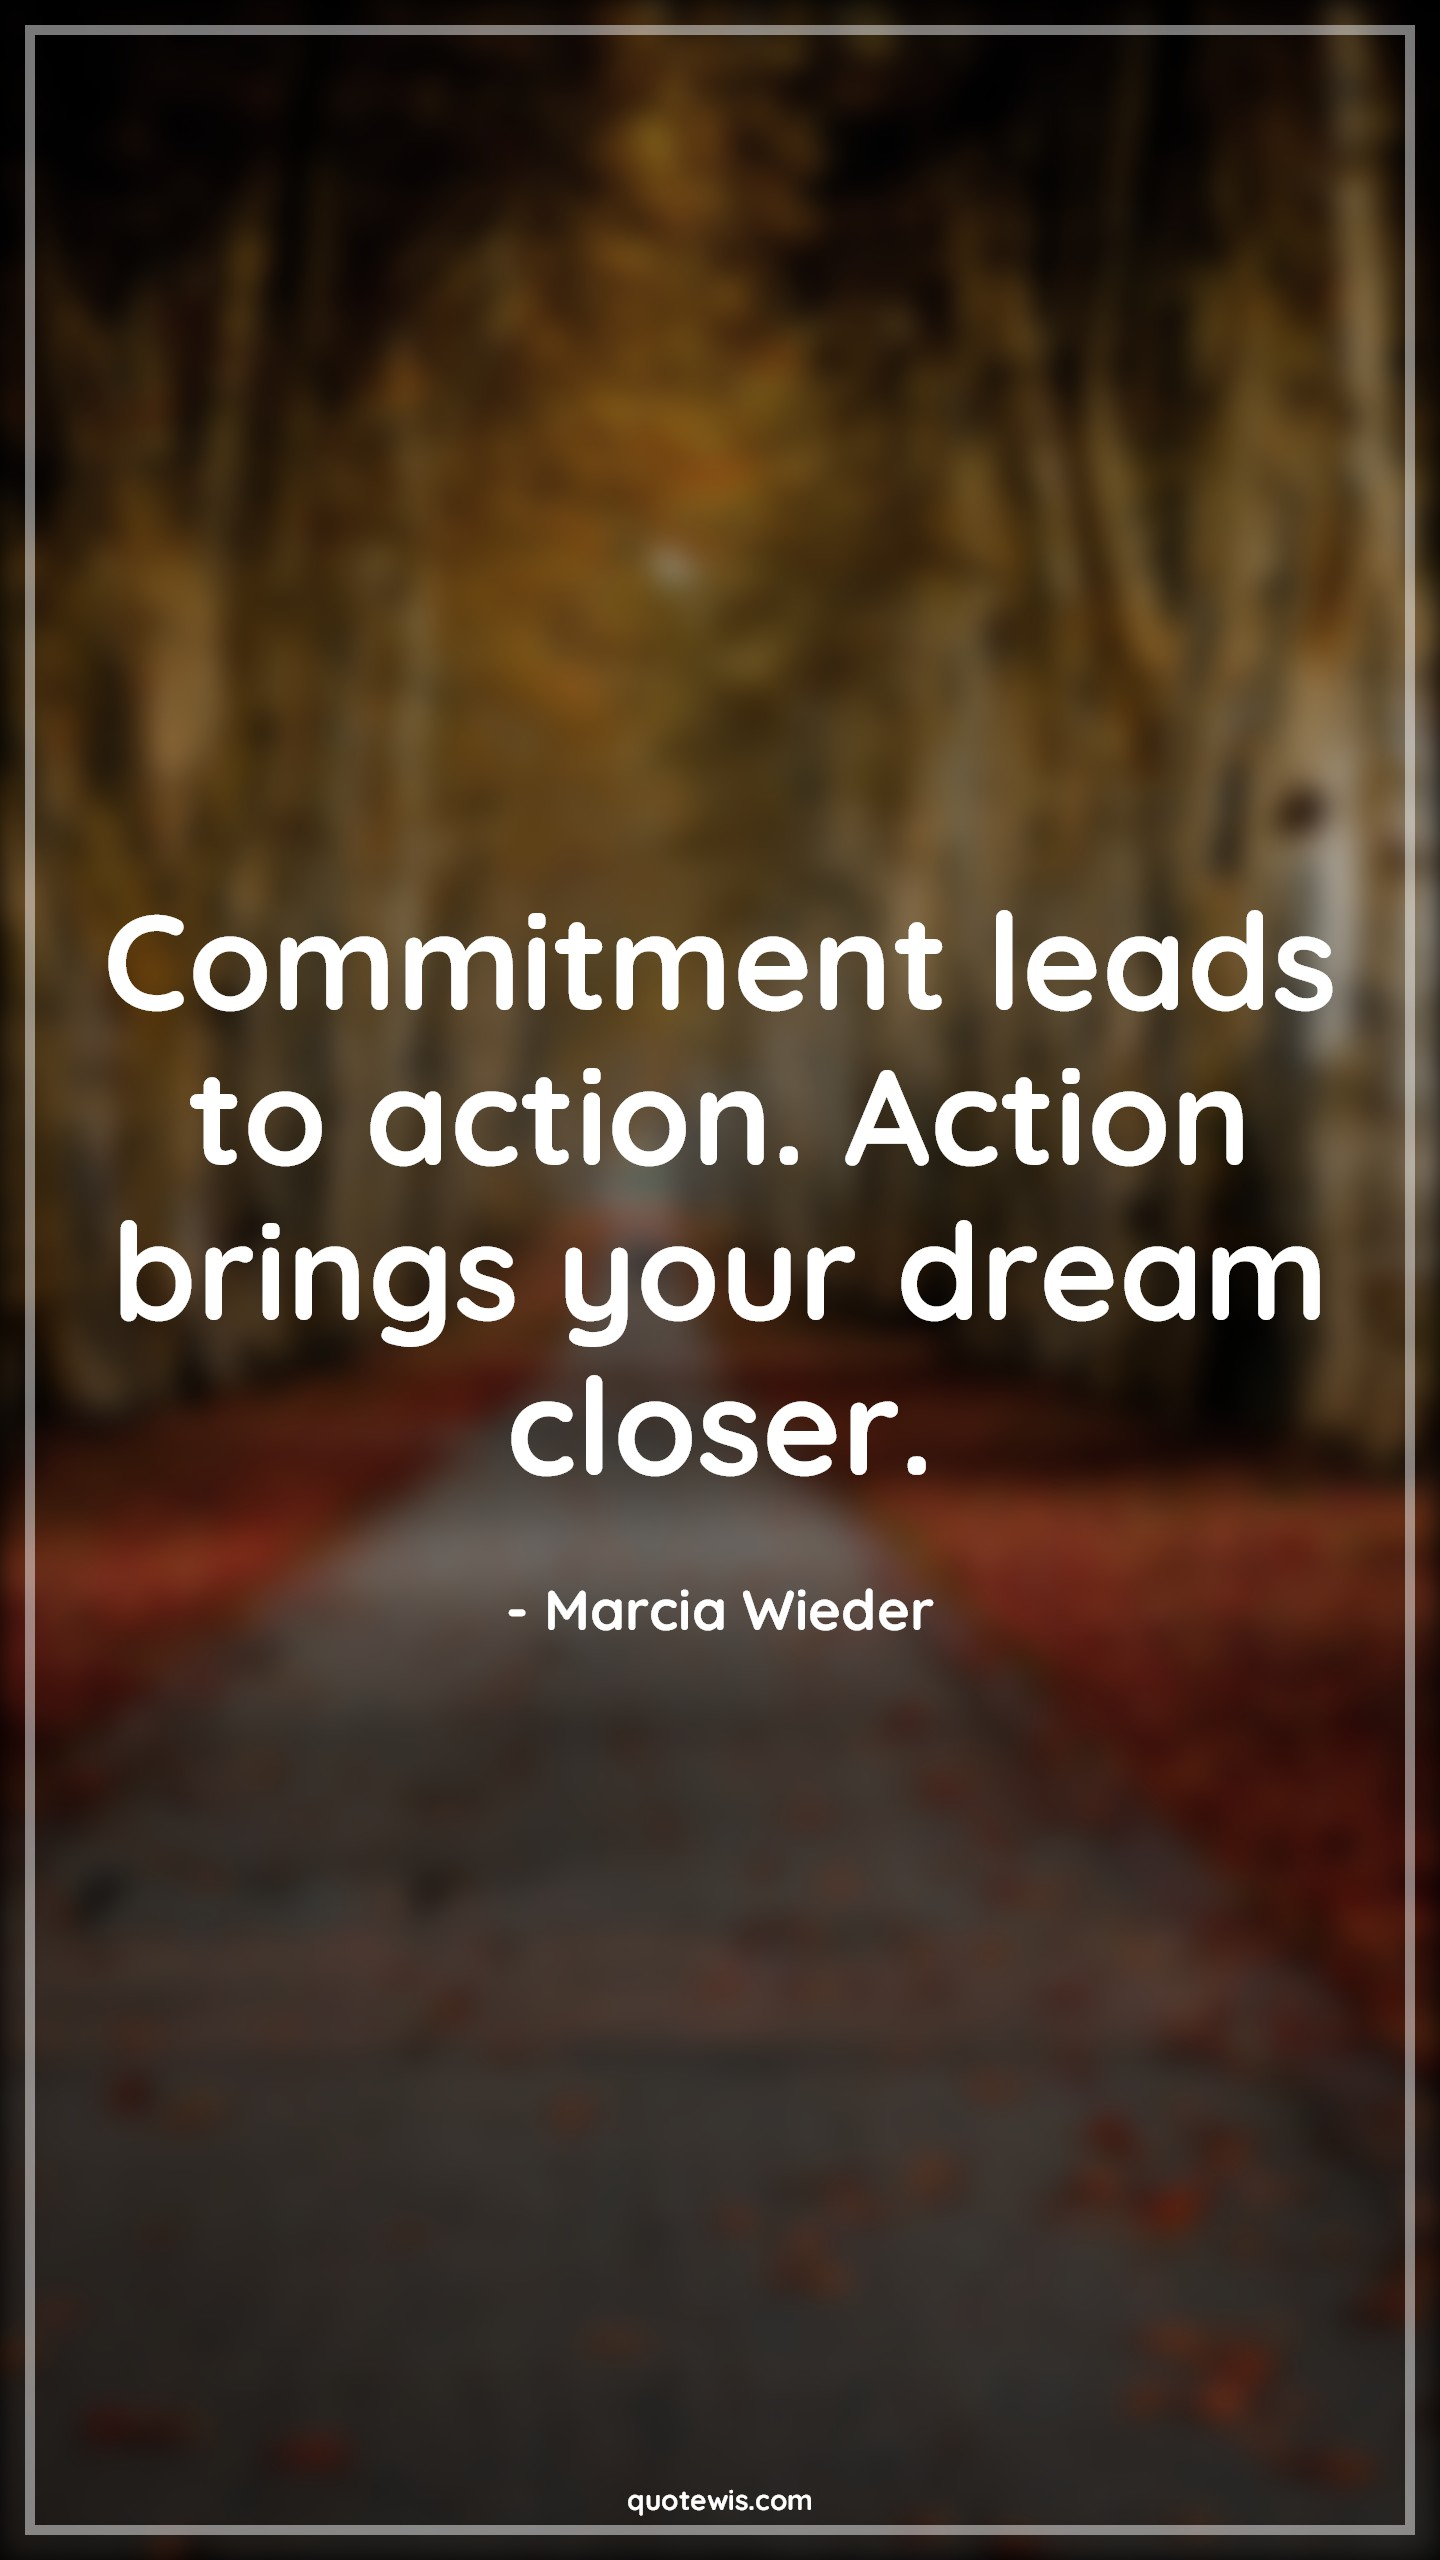 Commitment leads to action. Action brings your dream closer.